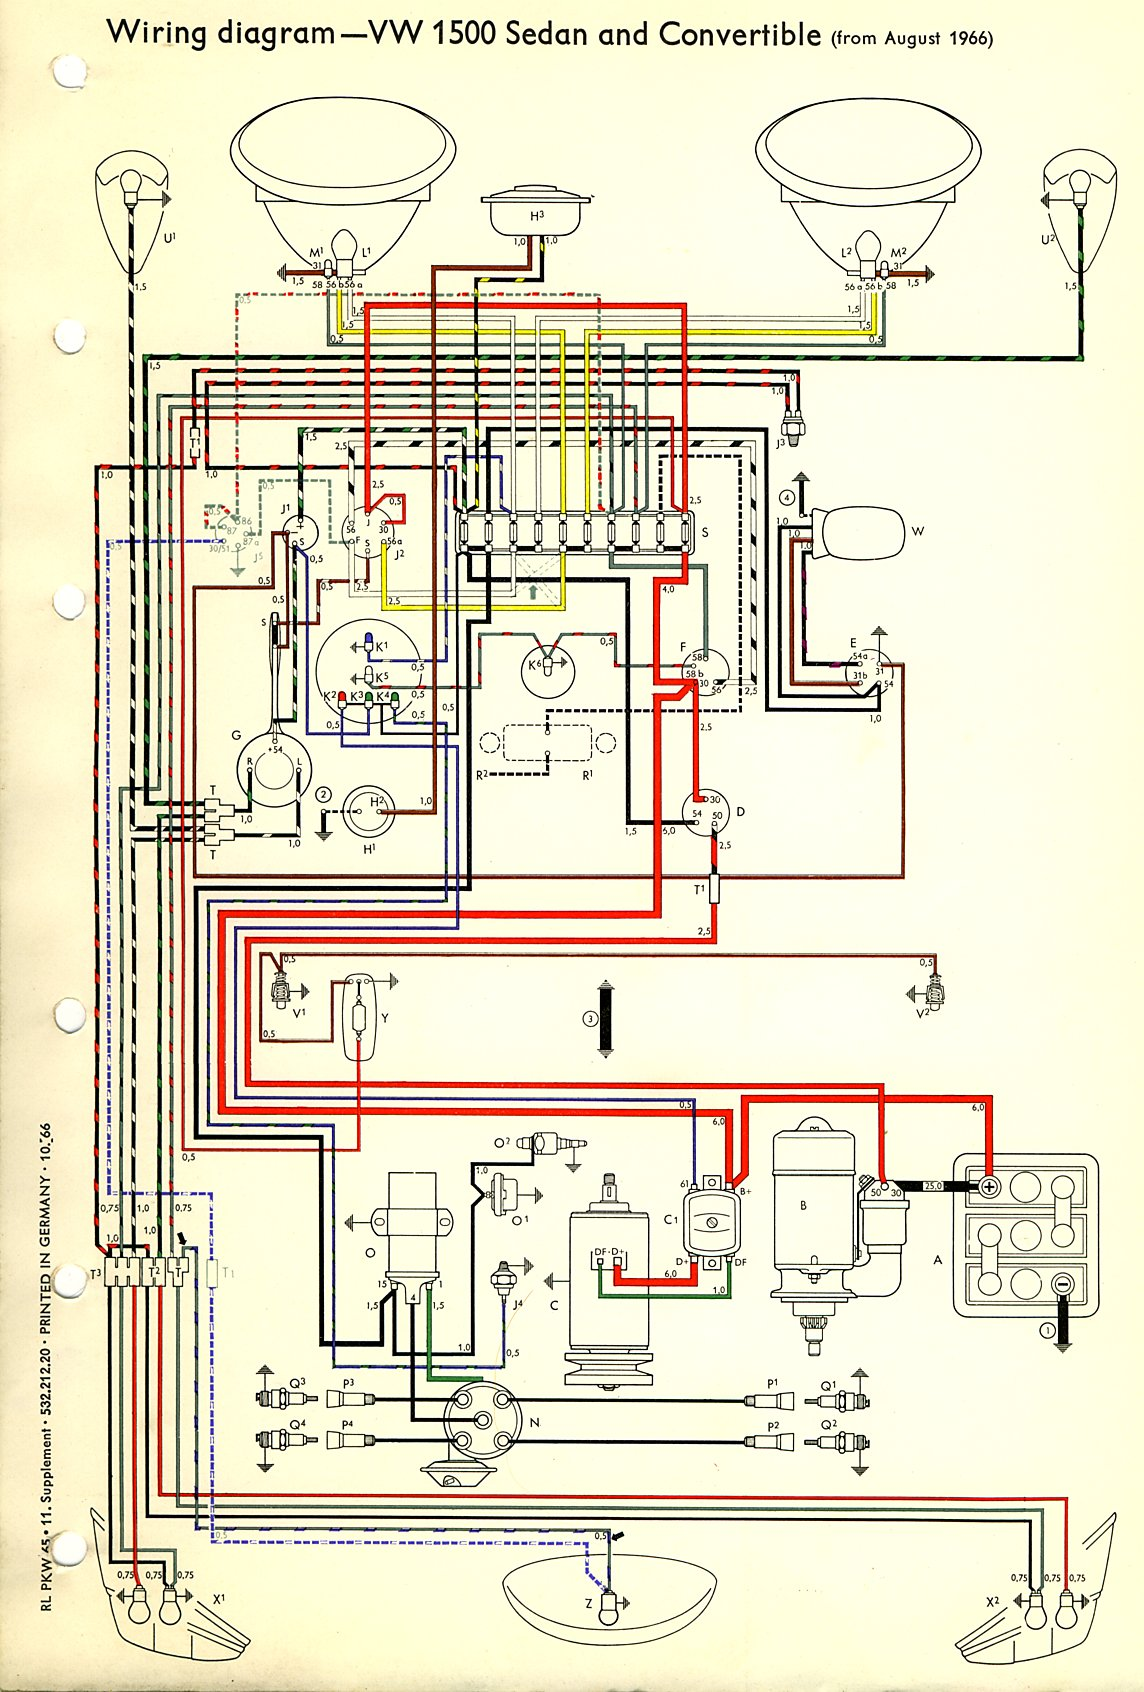 bug_67 1967 beetle wiring diagram thegoldenbug com 1965 vw beetle wiring diagram at nearapp.co